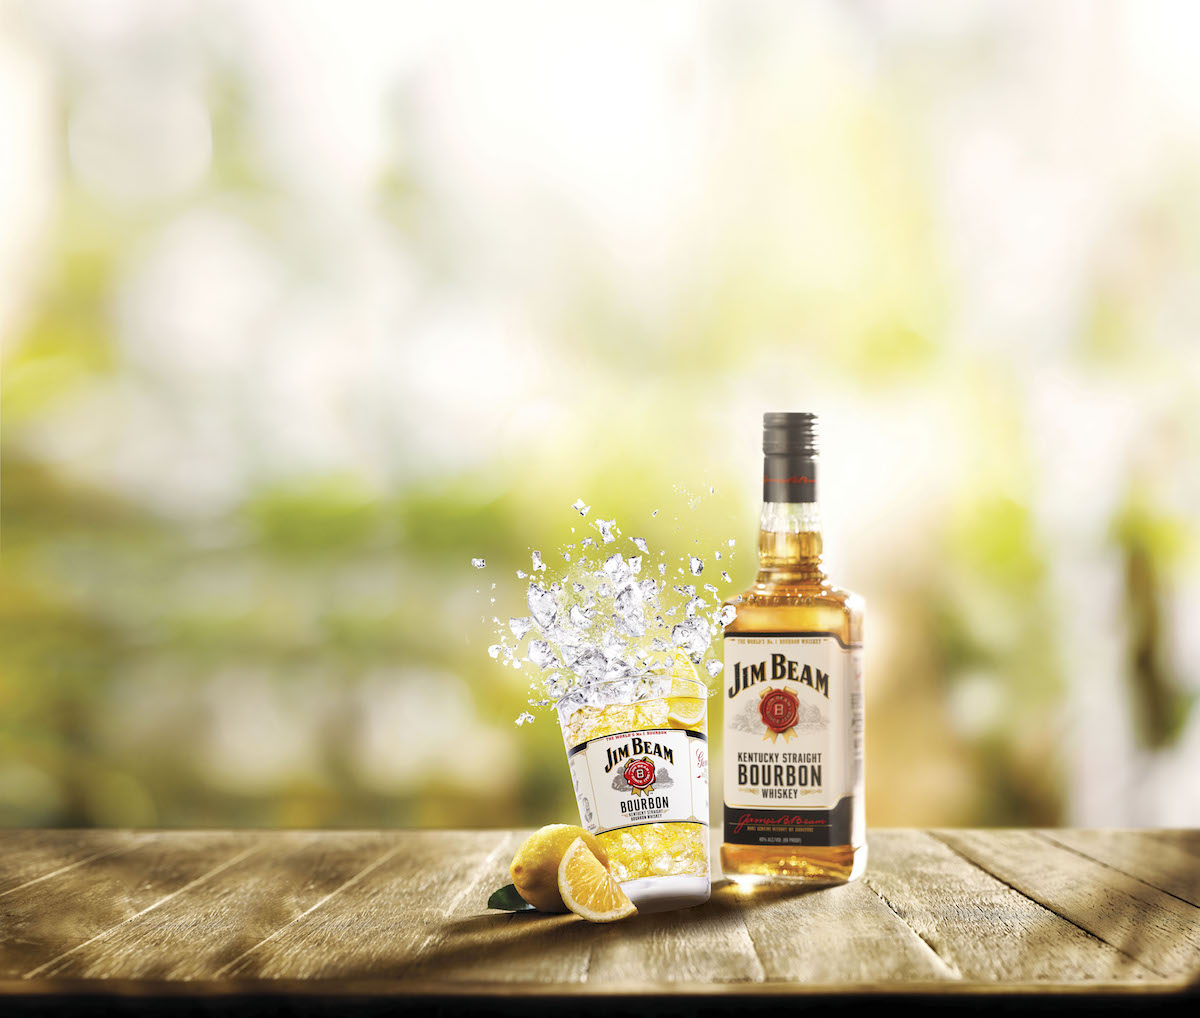 Win tickets to the Armin Only Embrace World Tour with Jim Beam